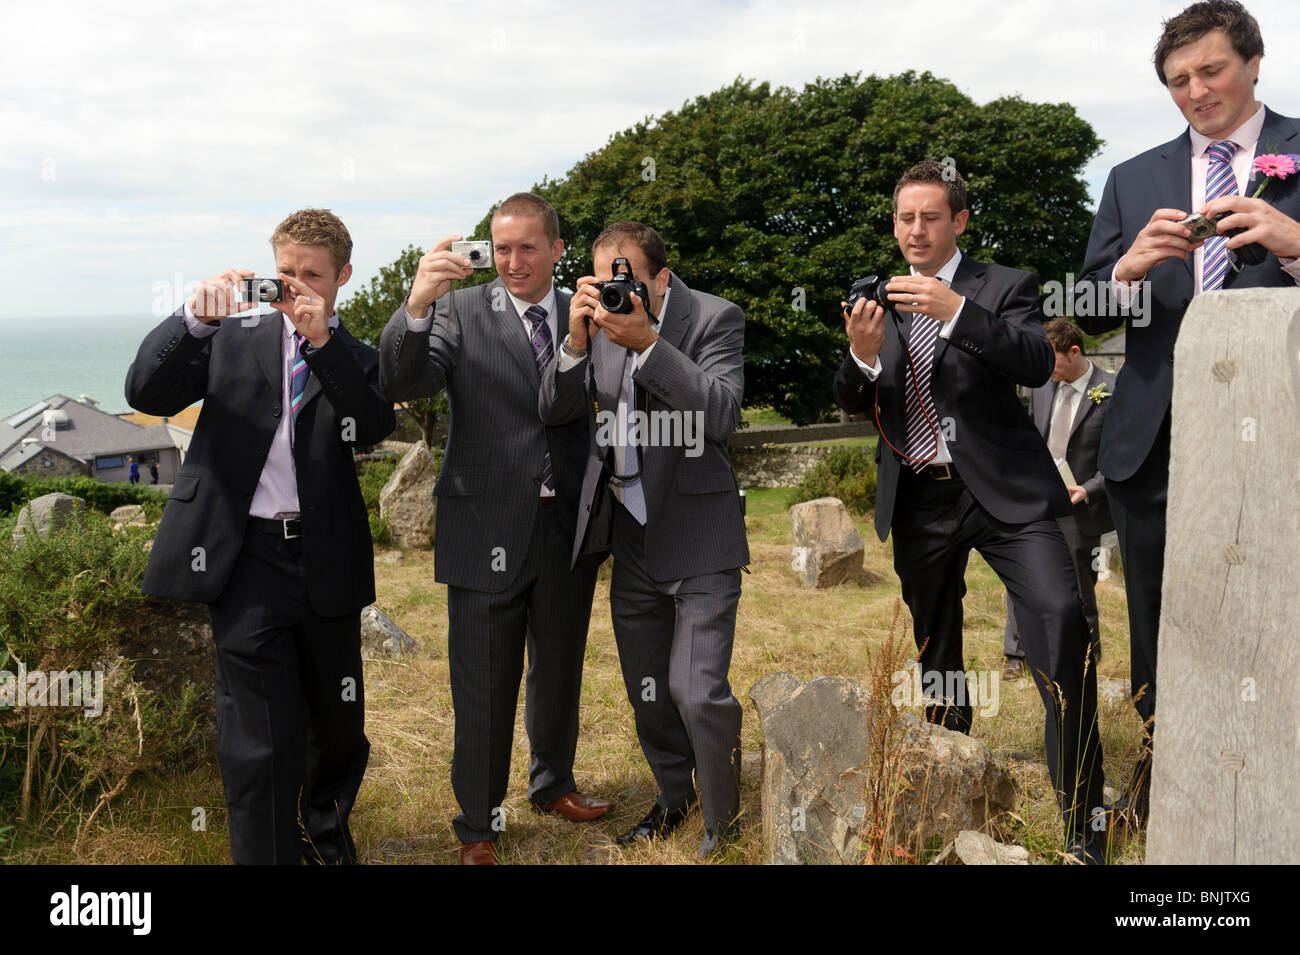 Five men wearing suits guests at wedding taking photographs on their digital cameras, UK - Stock Image